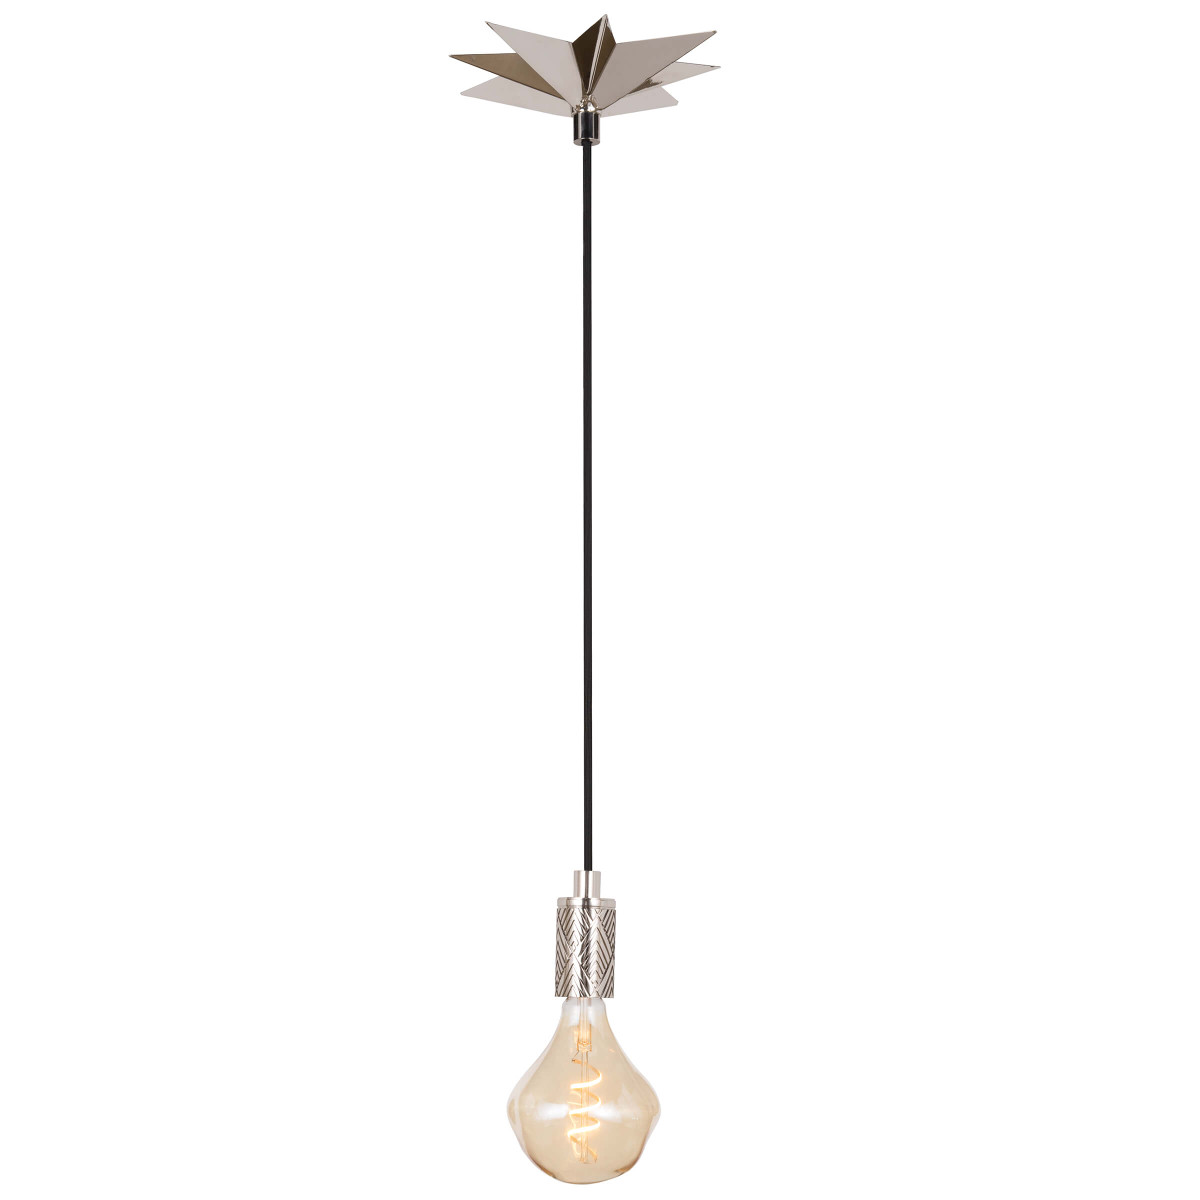 Hudson Pendant Polished Nickel | Regina Andrew